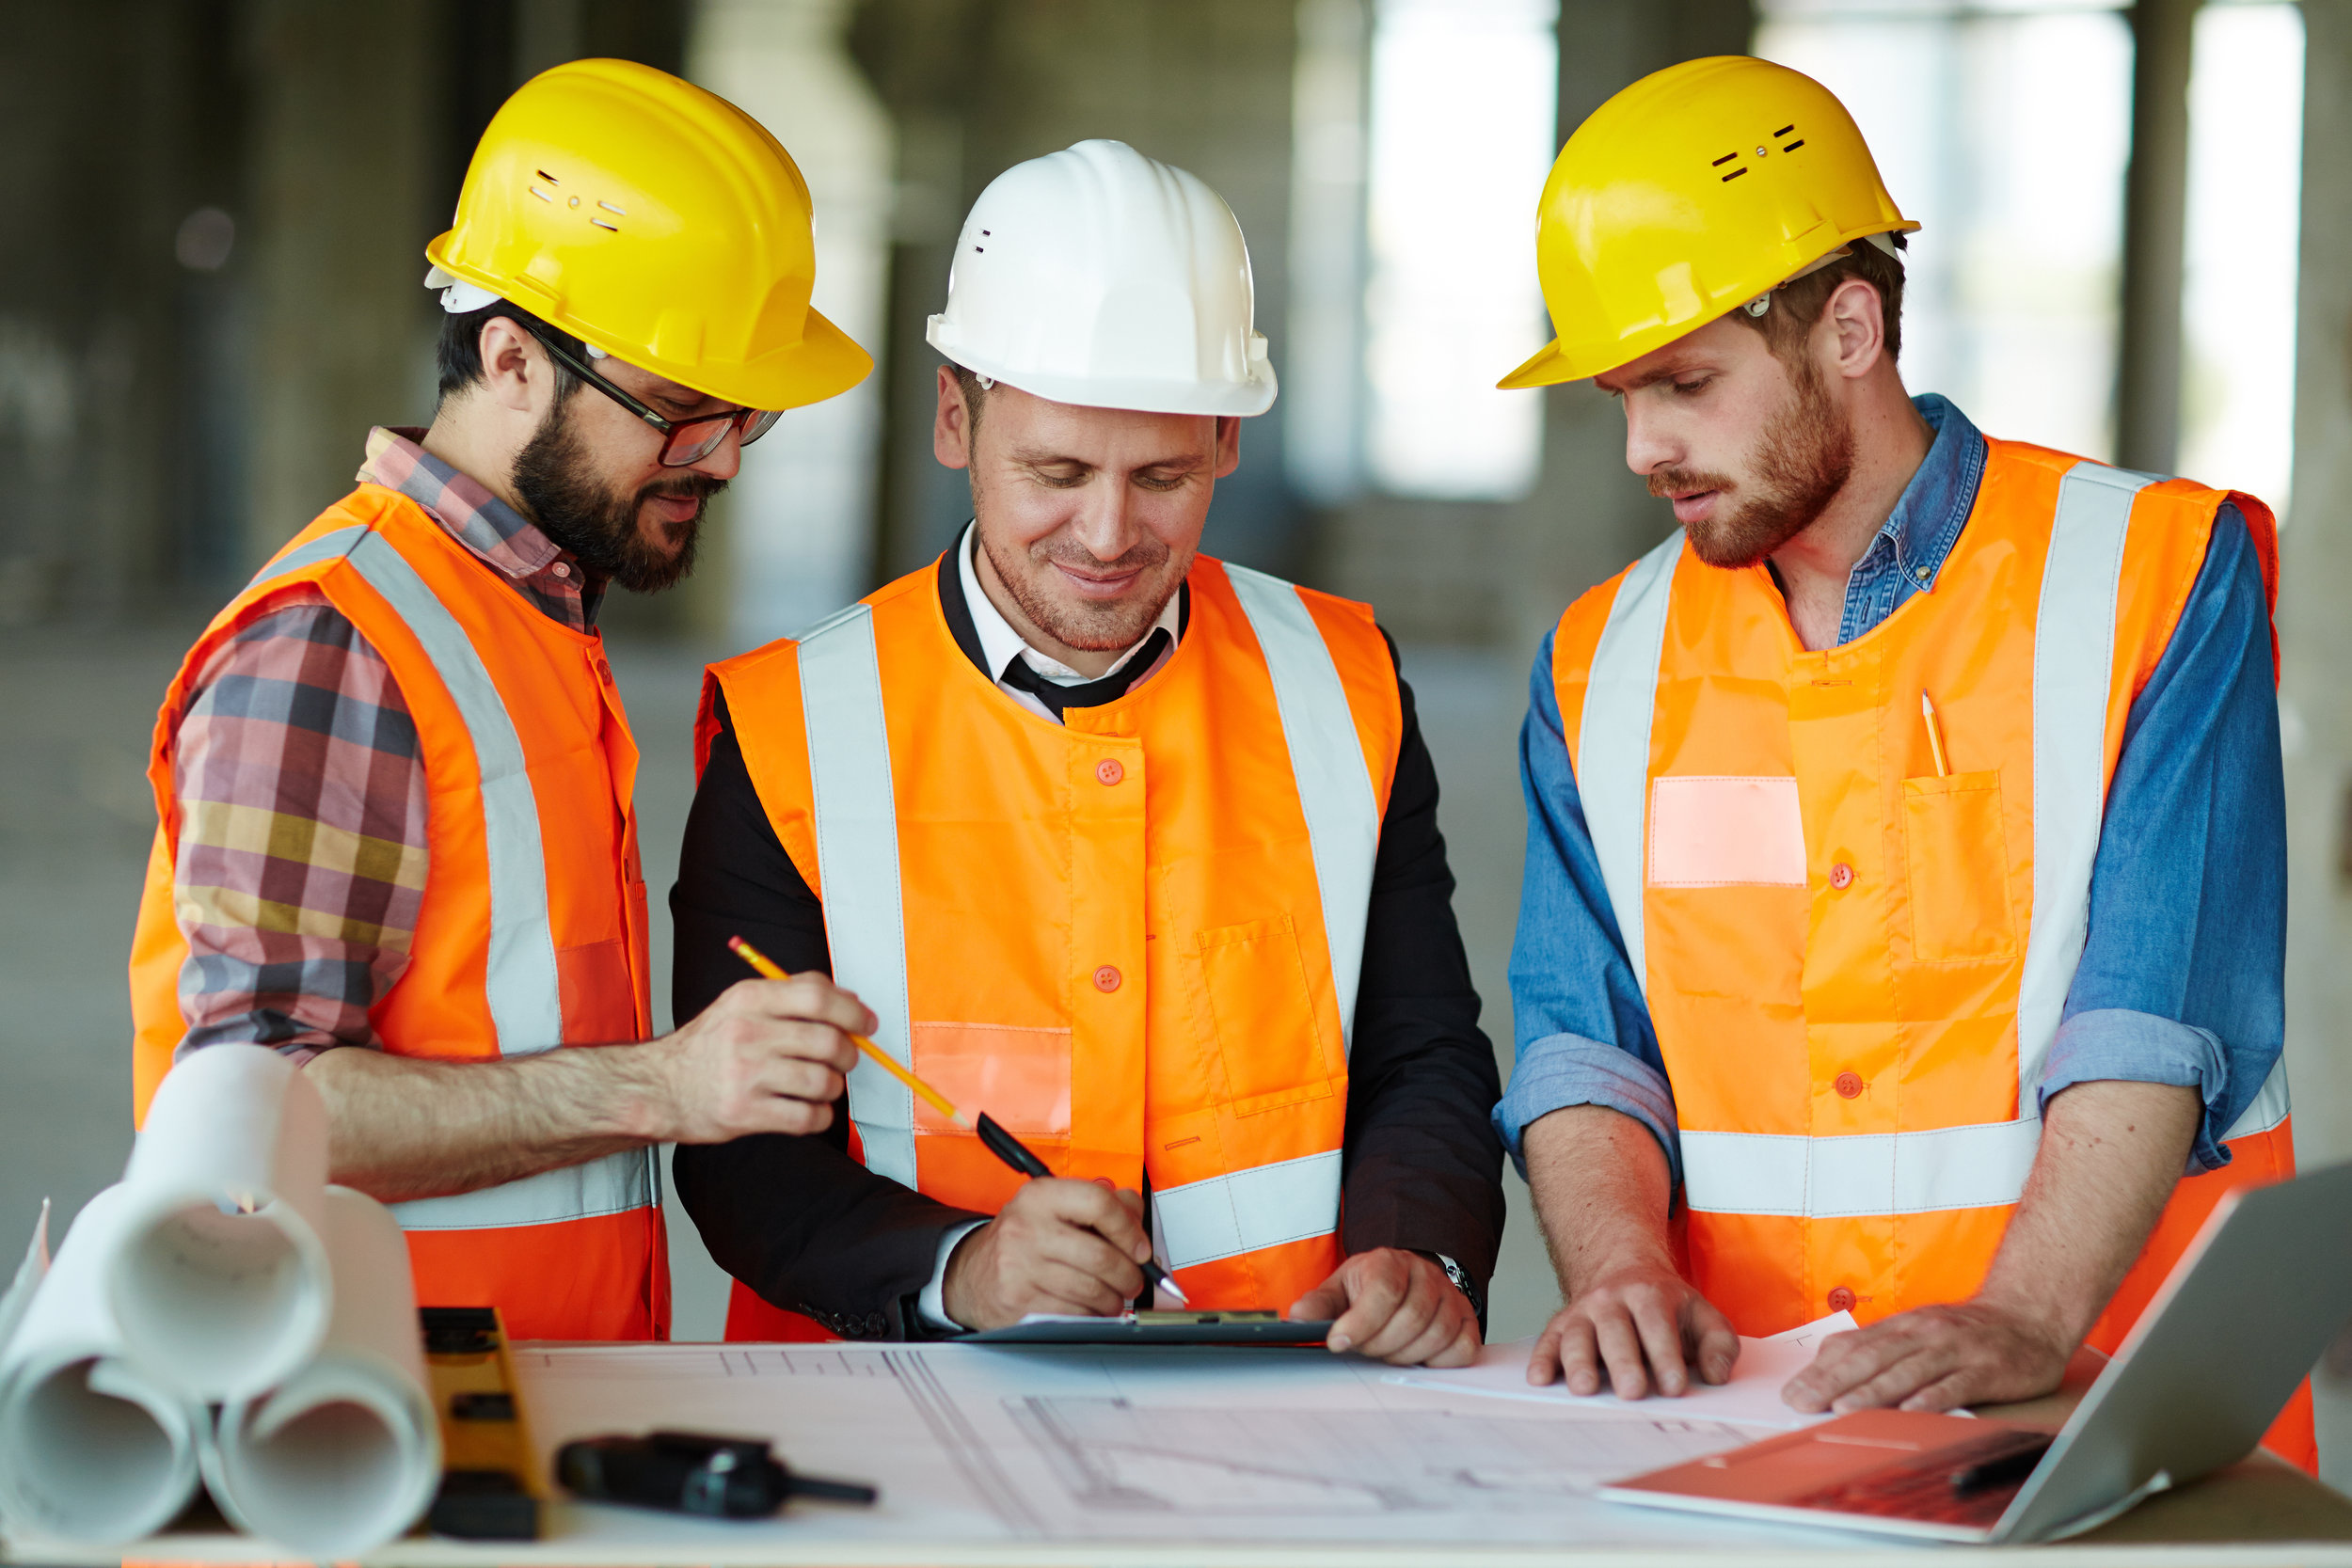 Choosing Subcontractors in Construction Management: Article by Artan Balaj, Purchasing